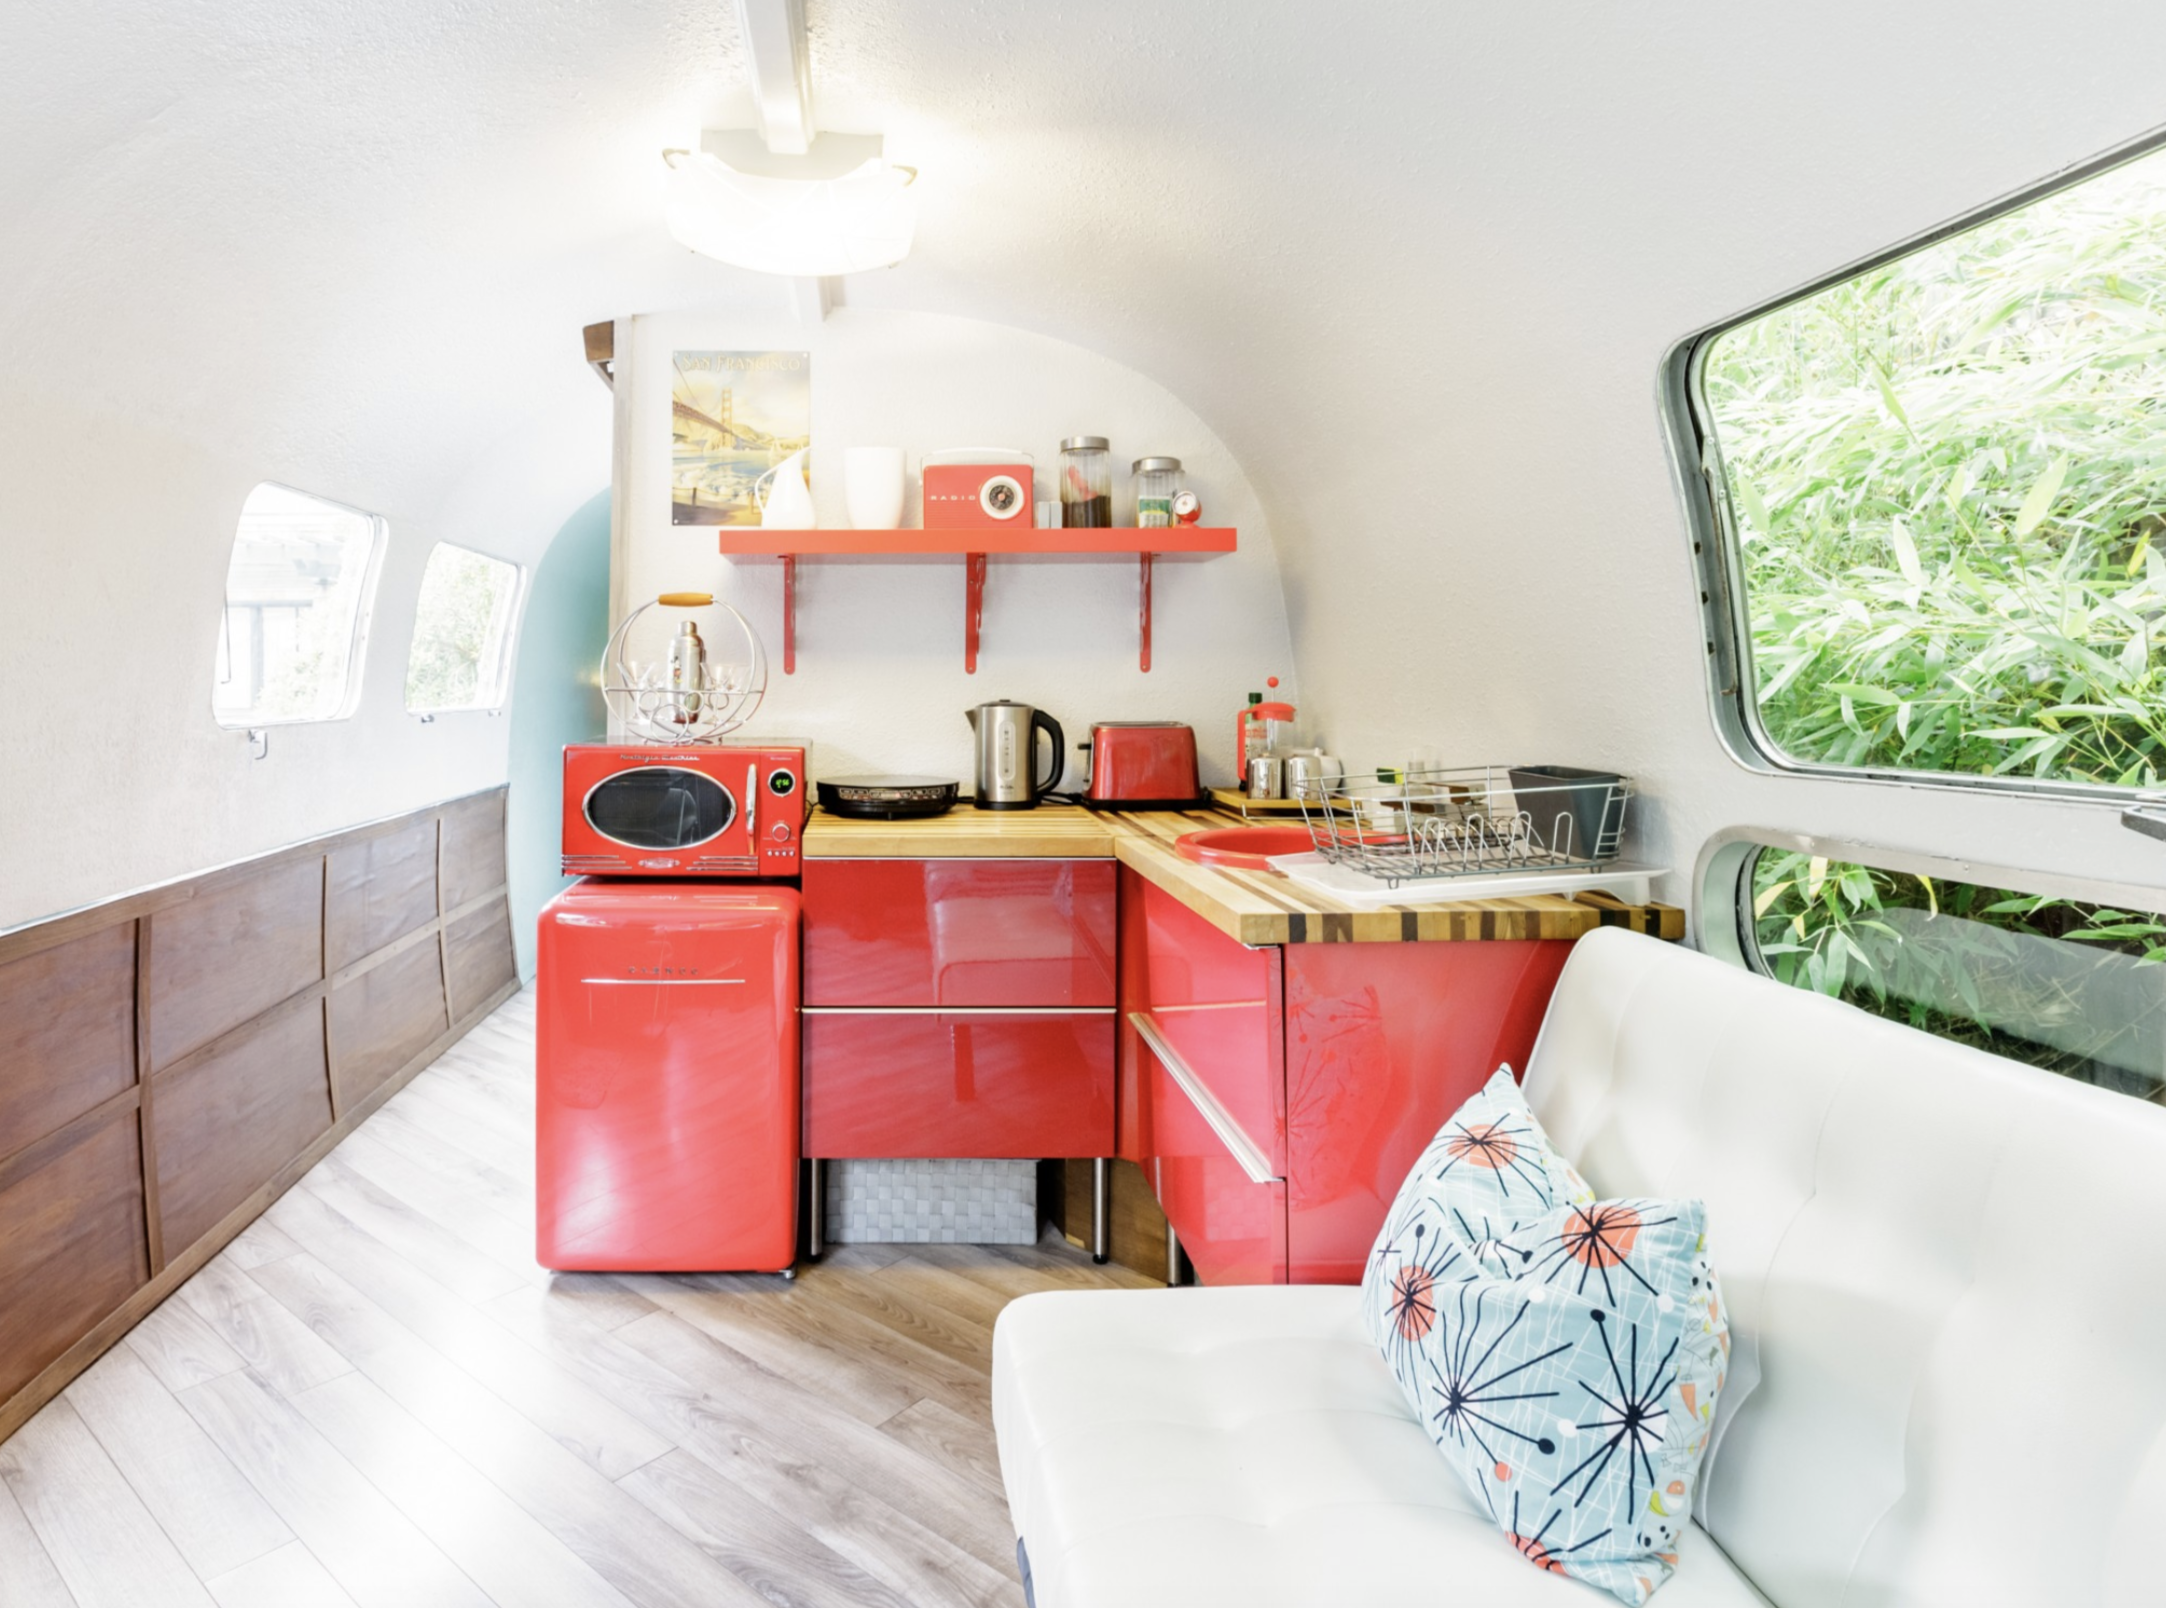 Most Unique USA Airbnbs vintage airstream San Francisco California retro red kitchen appliances microwave fridge stove